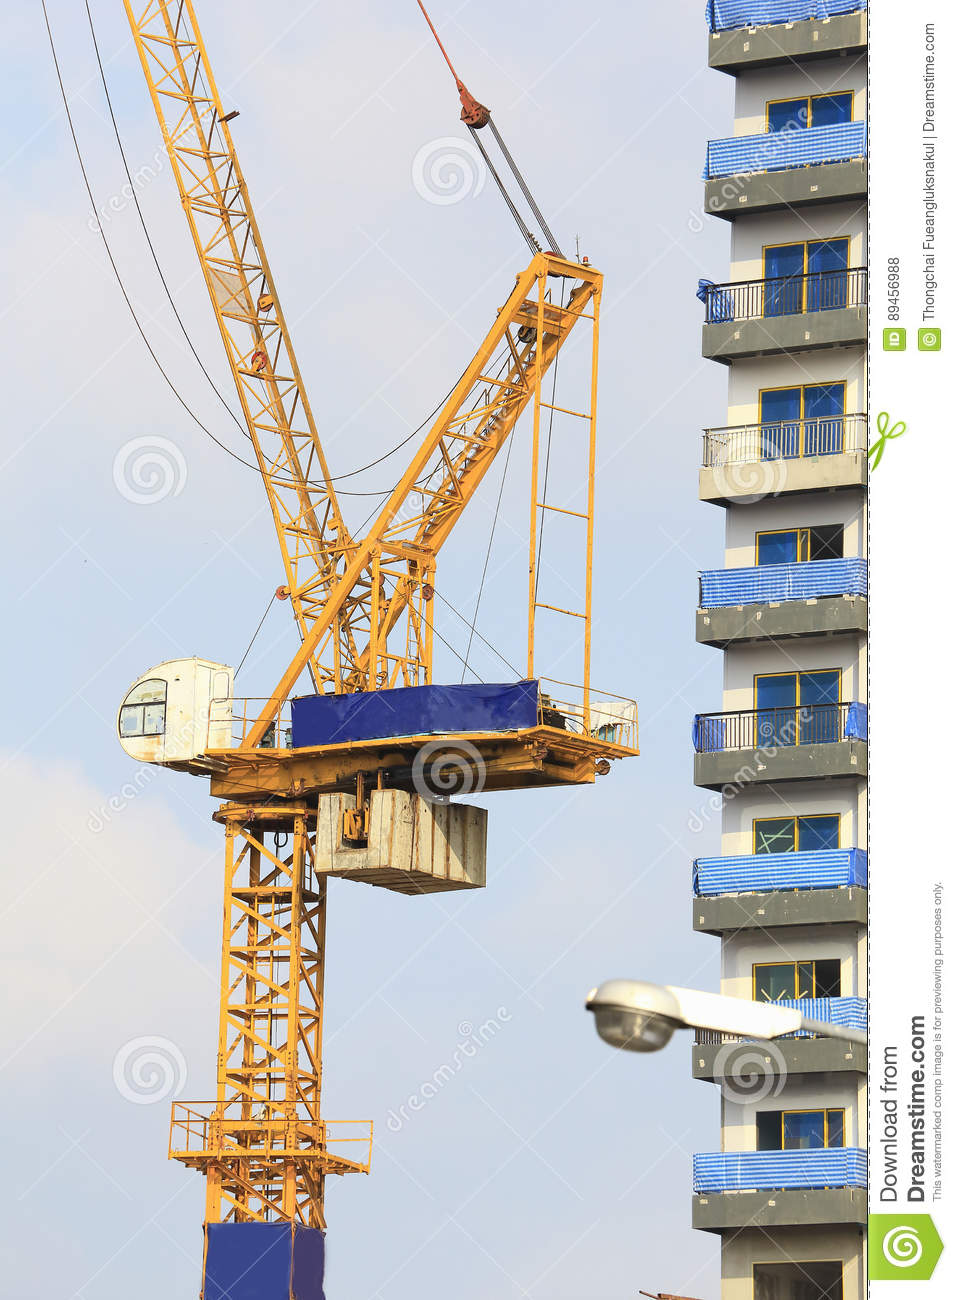 Yellow cranes in construction site with blue sky and cloud.